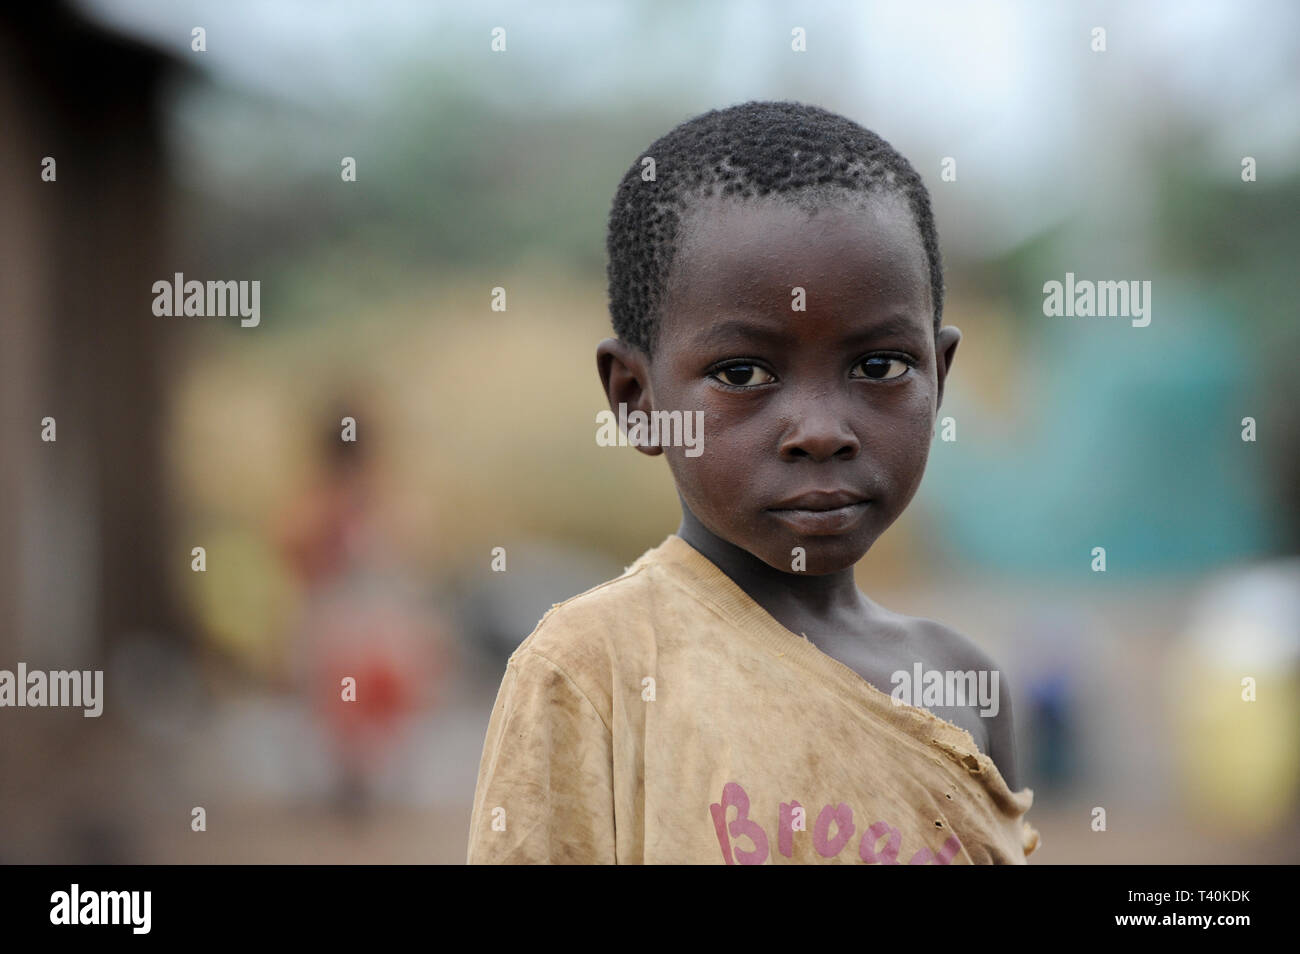 KENYA Turkana Region, refugee camp Kakuma, where 80.000 refugees from Somali, Ethiopia, South Sudan receive shelter and food from UNHCR, small boy in  - Stock Image